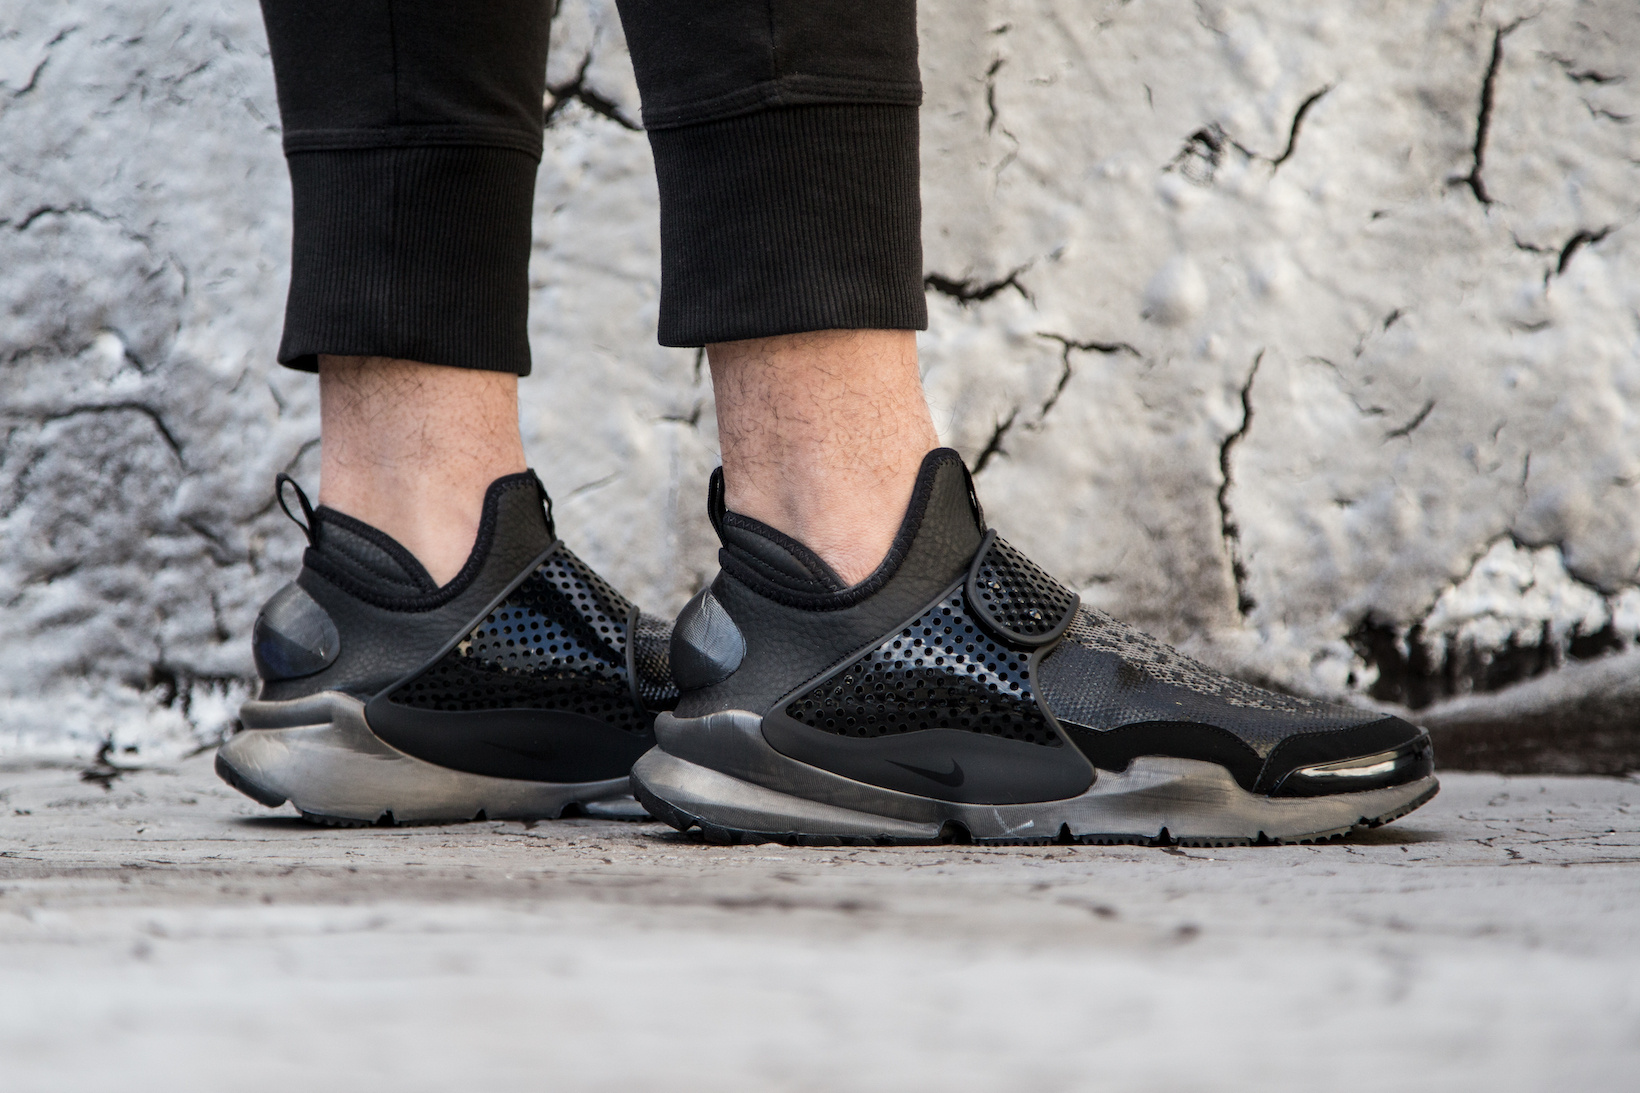 the latest c6a82 d5cac stone-island-nikelab-sock-dart-mid-on-feet-5.jpg